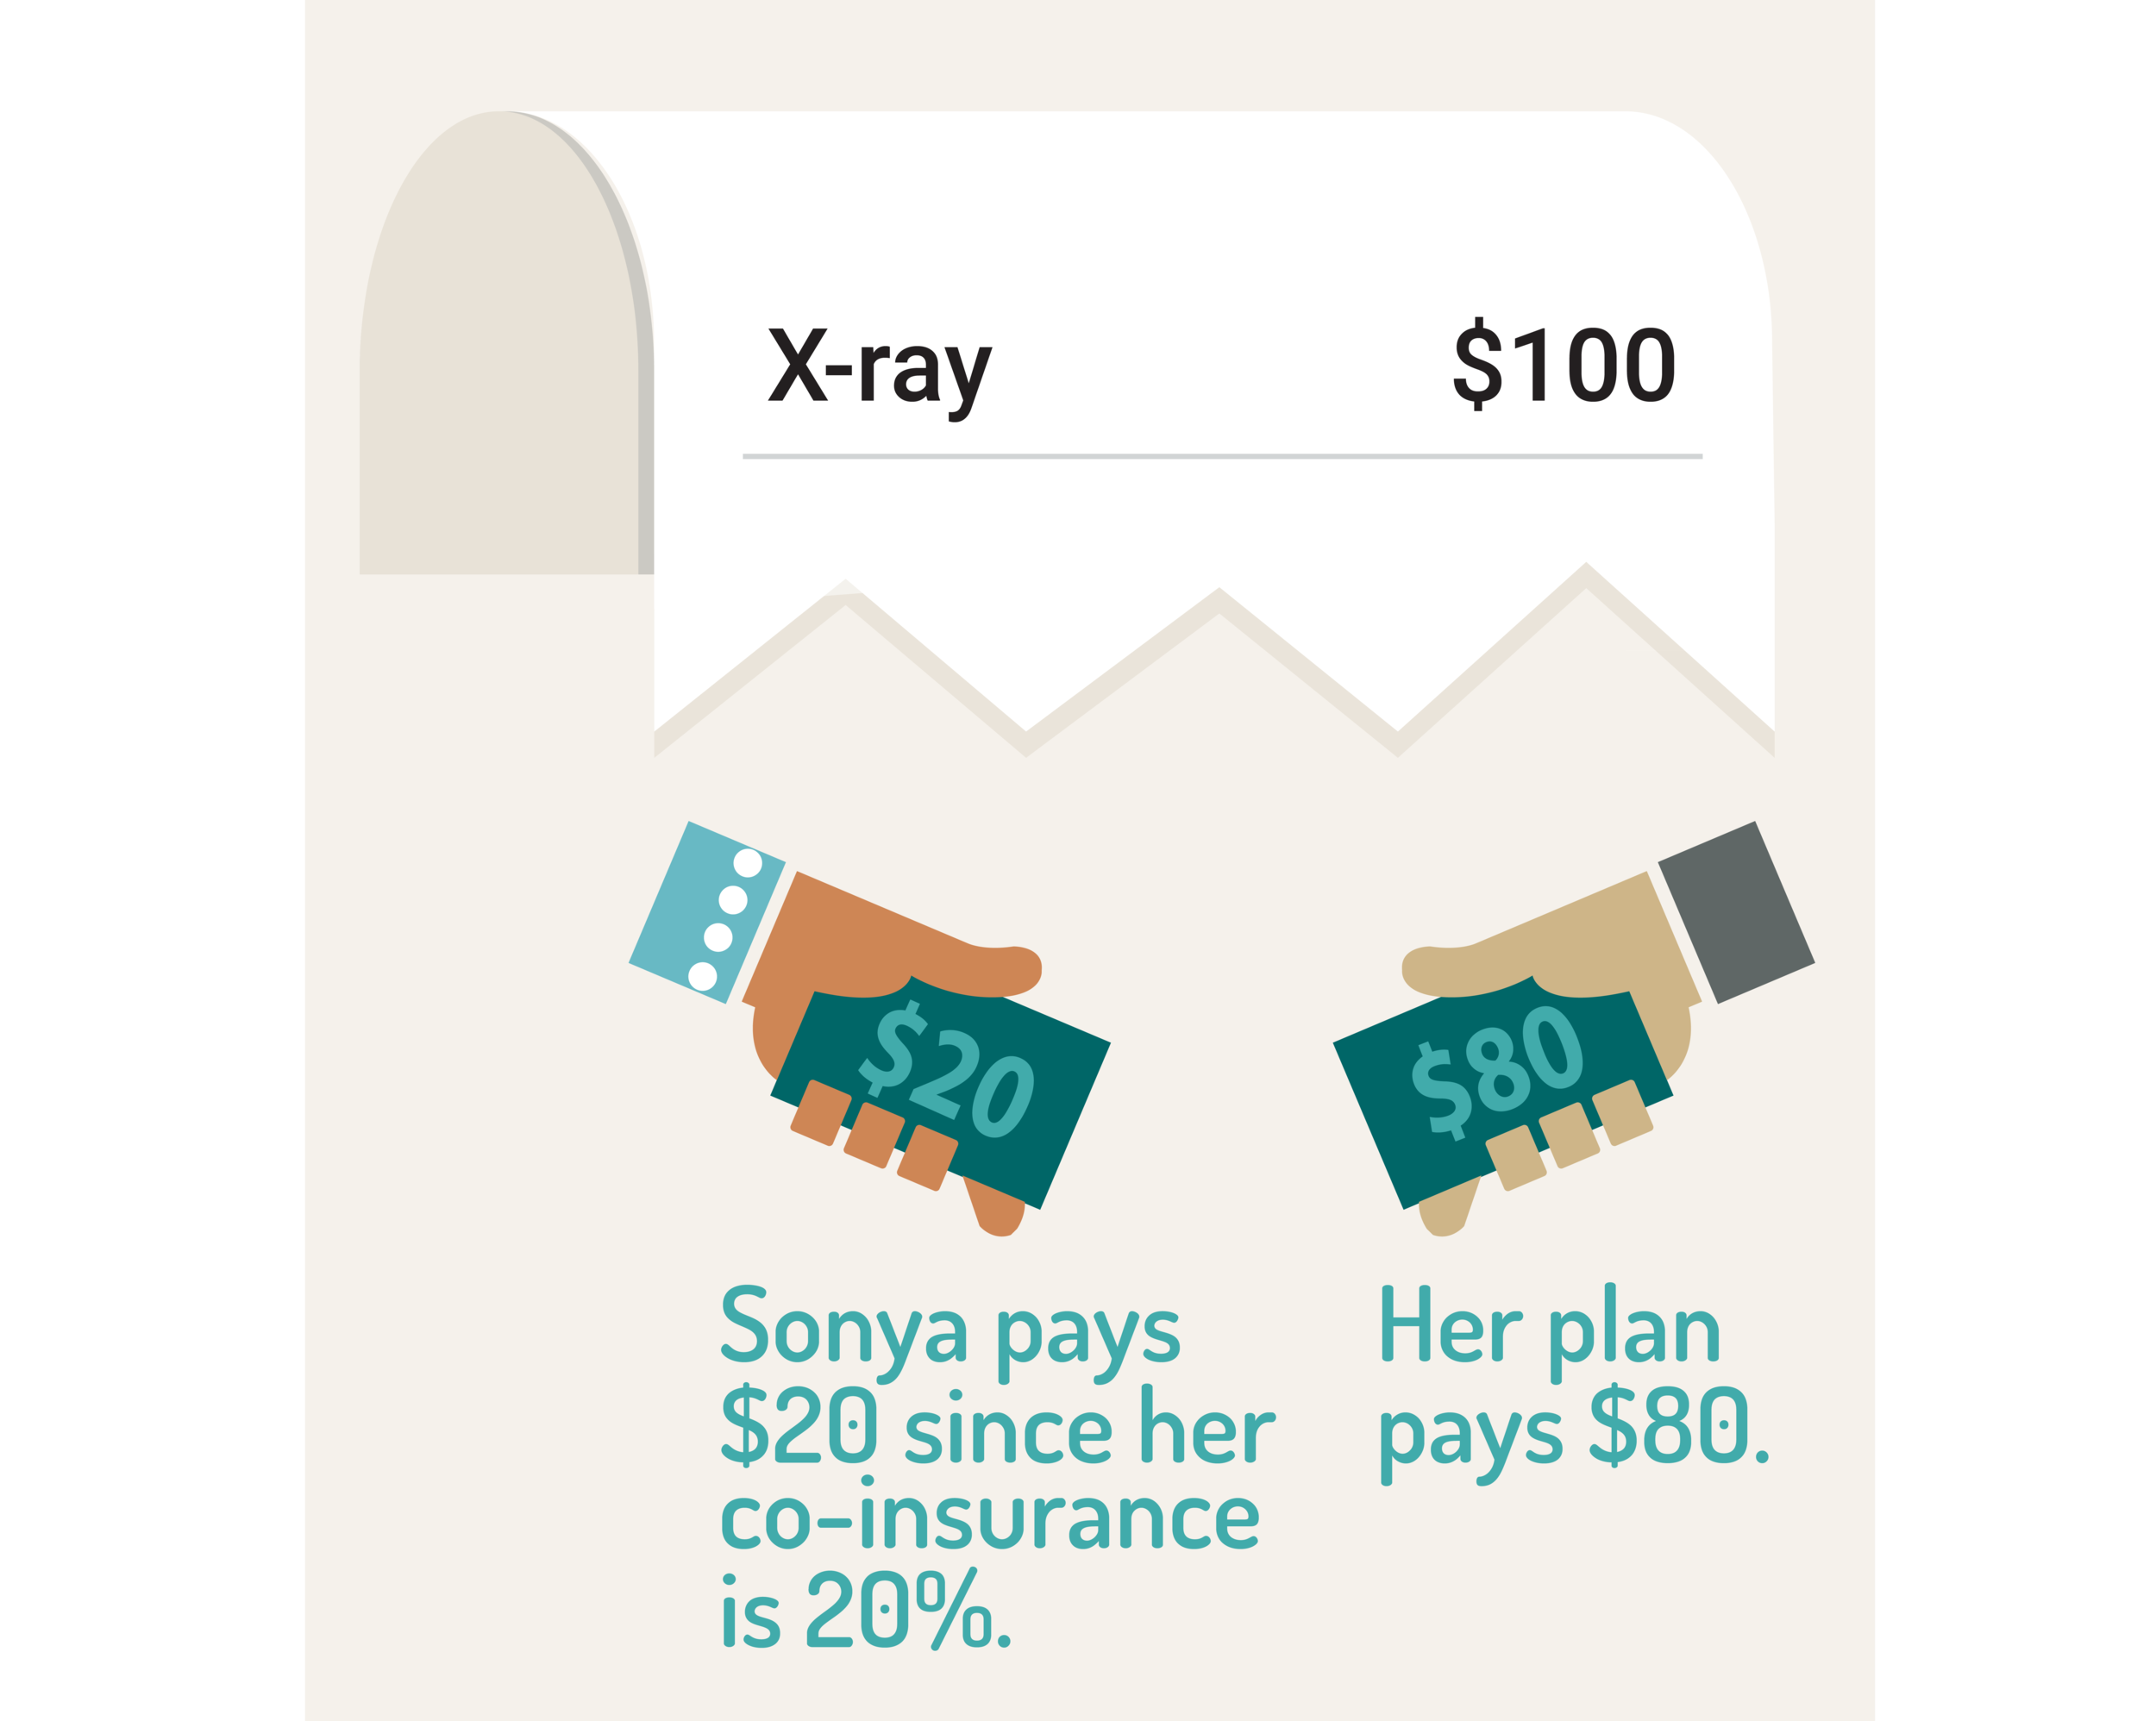 graphic showing how much Sonya pays and how much her insurance pays for her X-ray charges